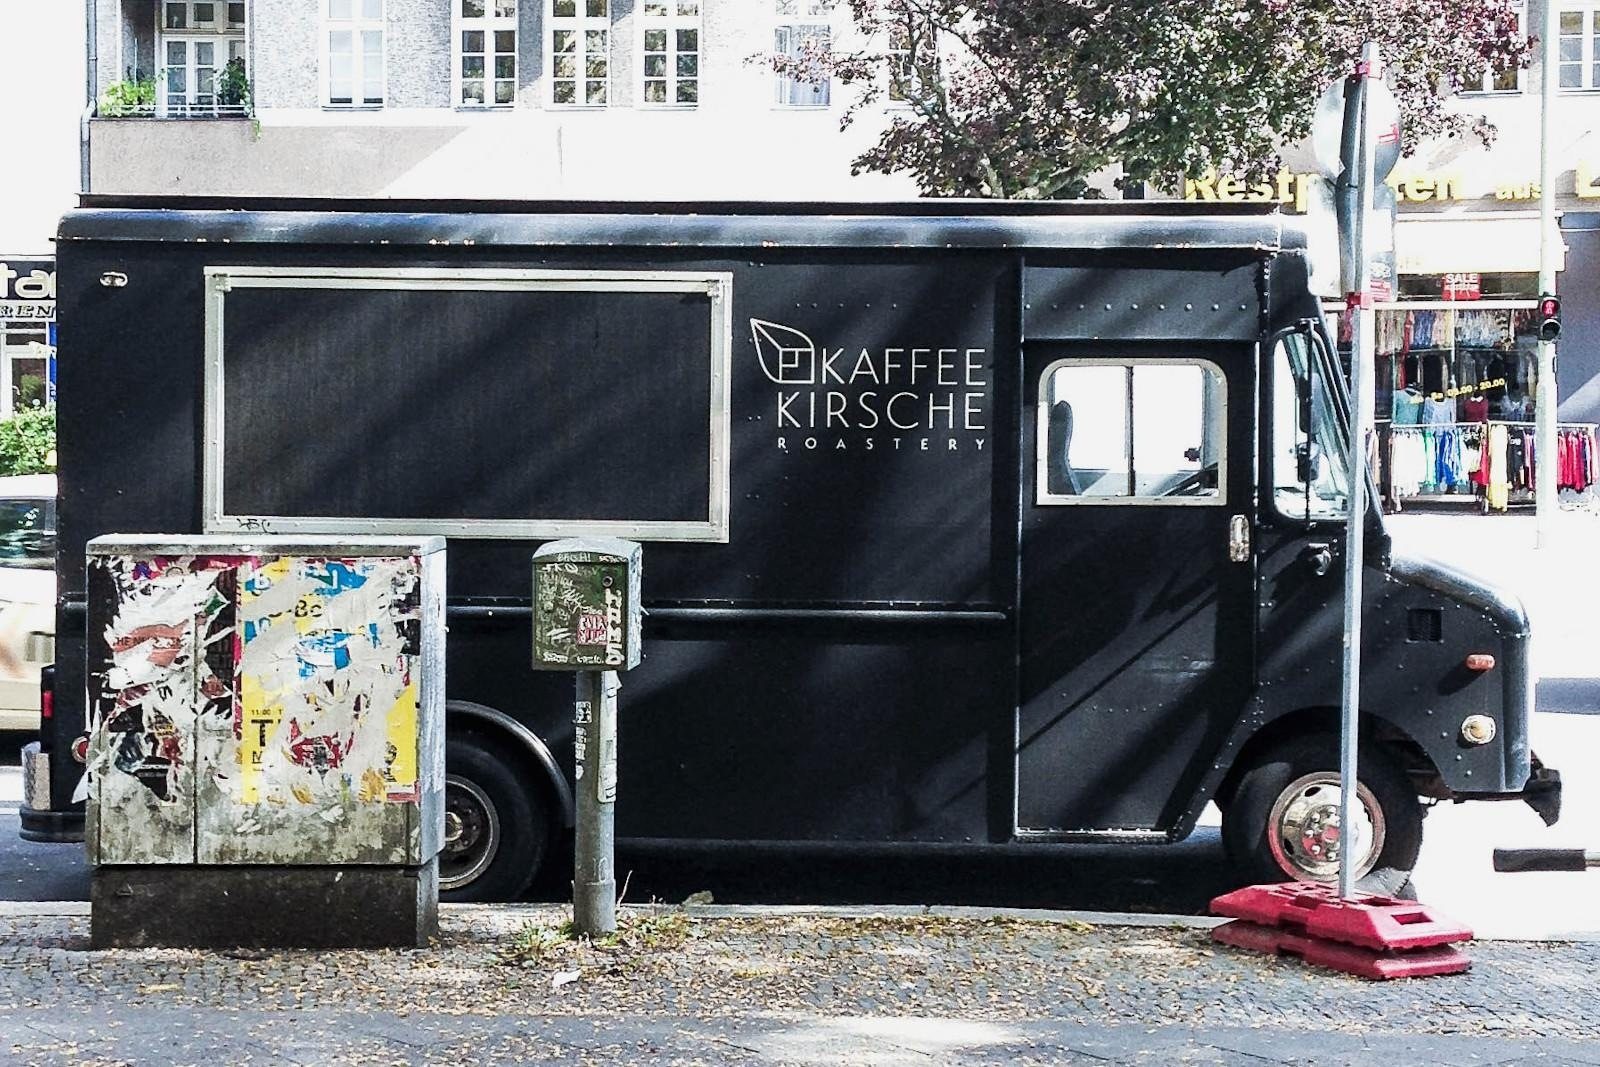 entrepreneurial firms reacting to coronavirus crisis - image of a Berlin coffee stand